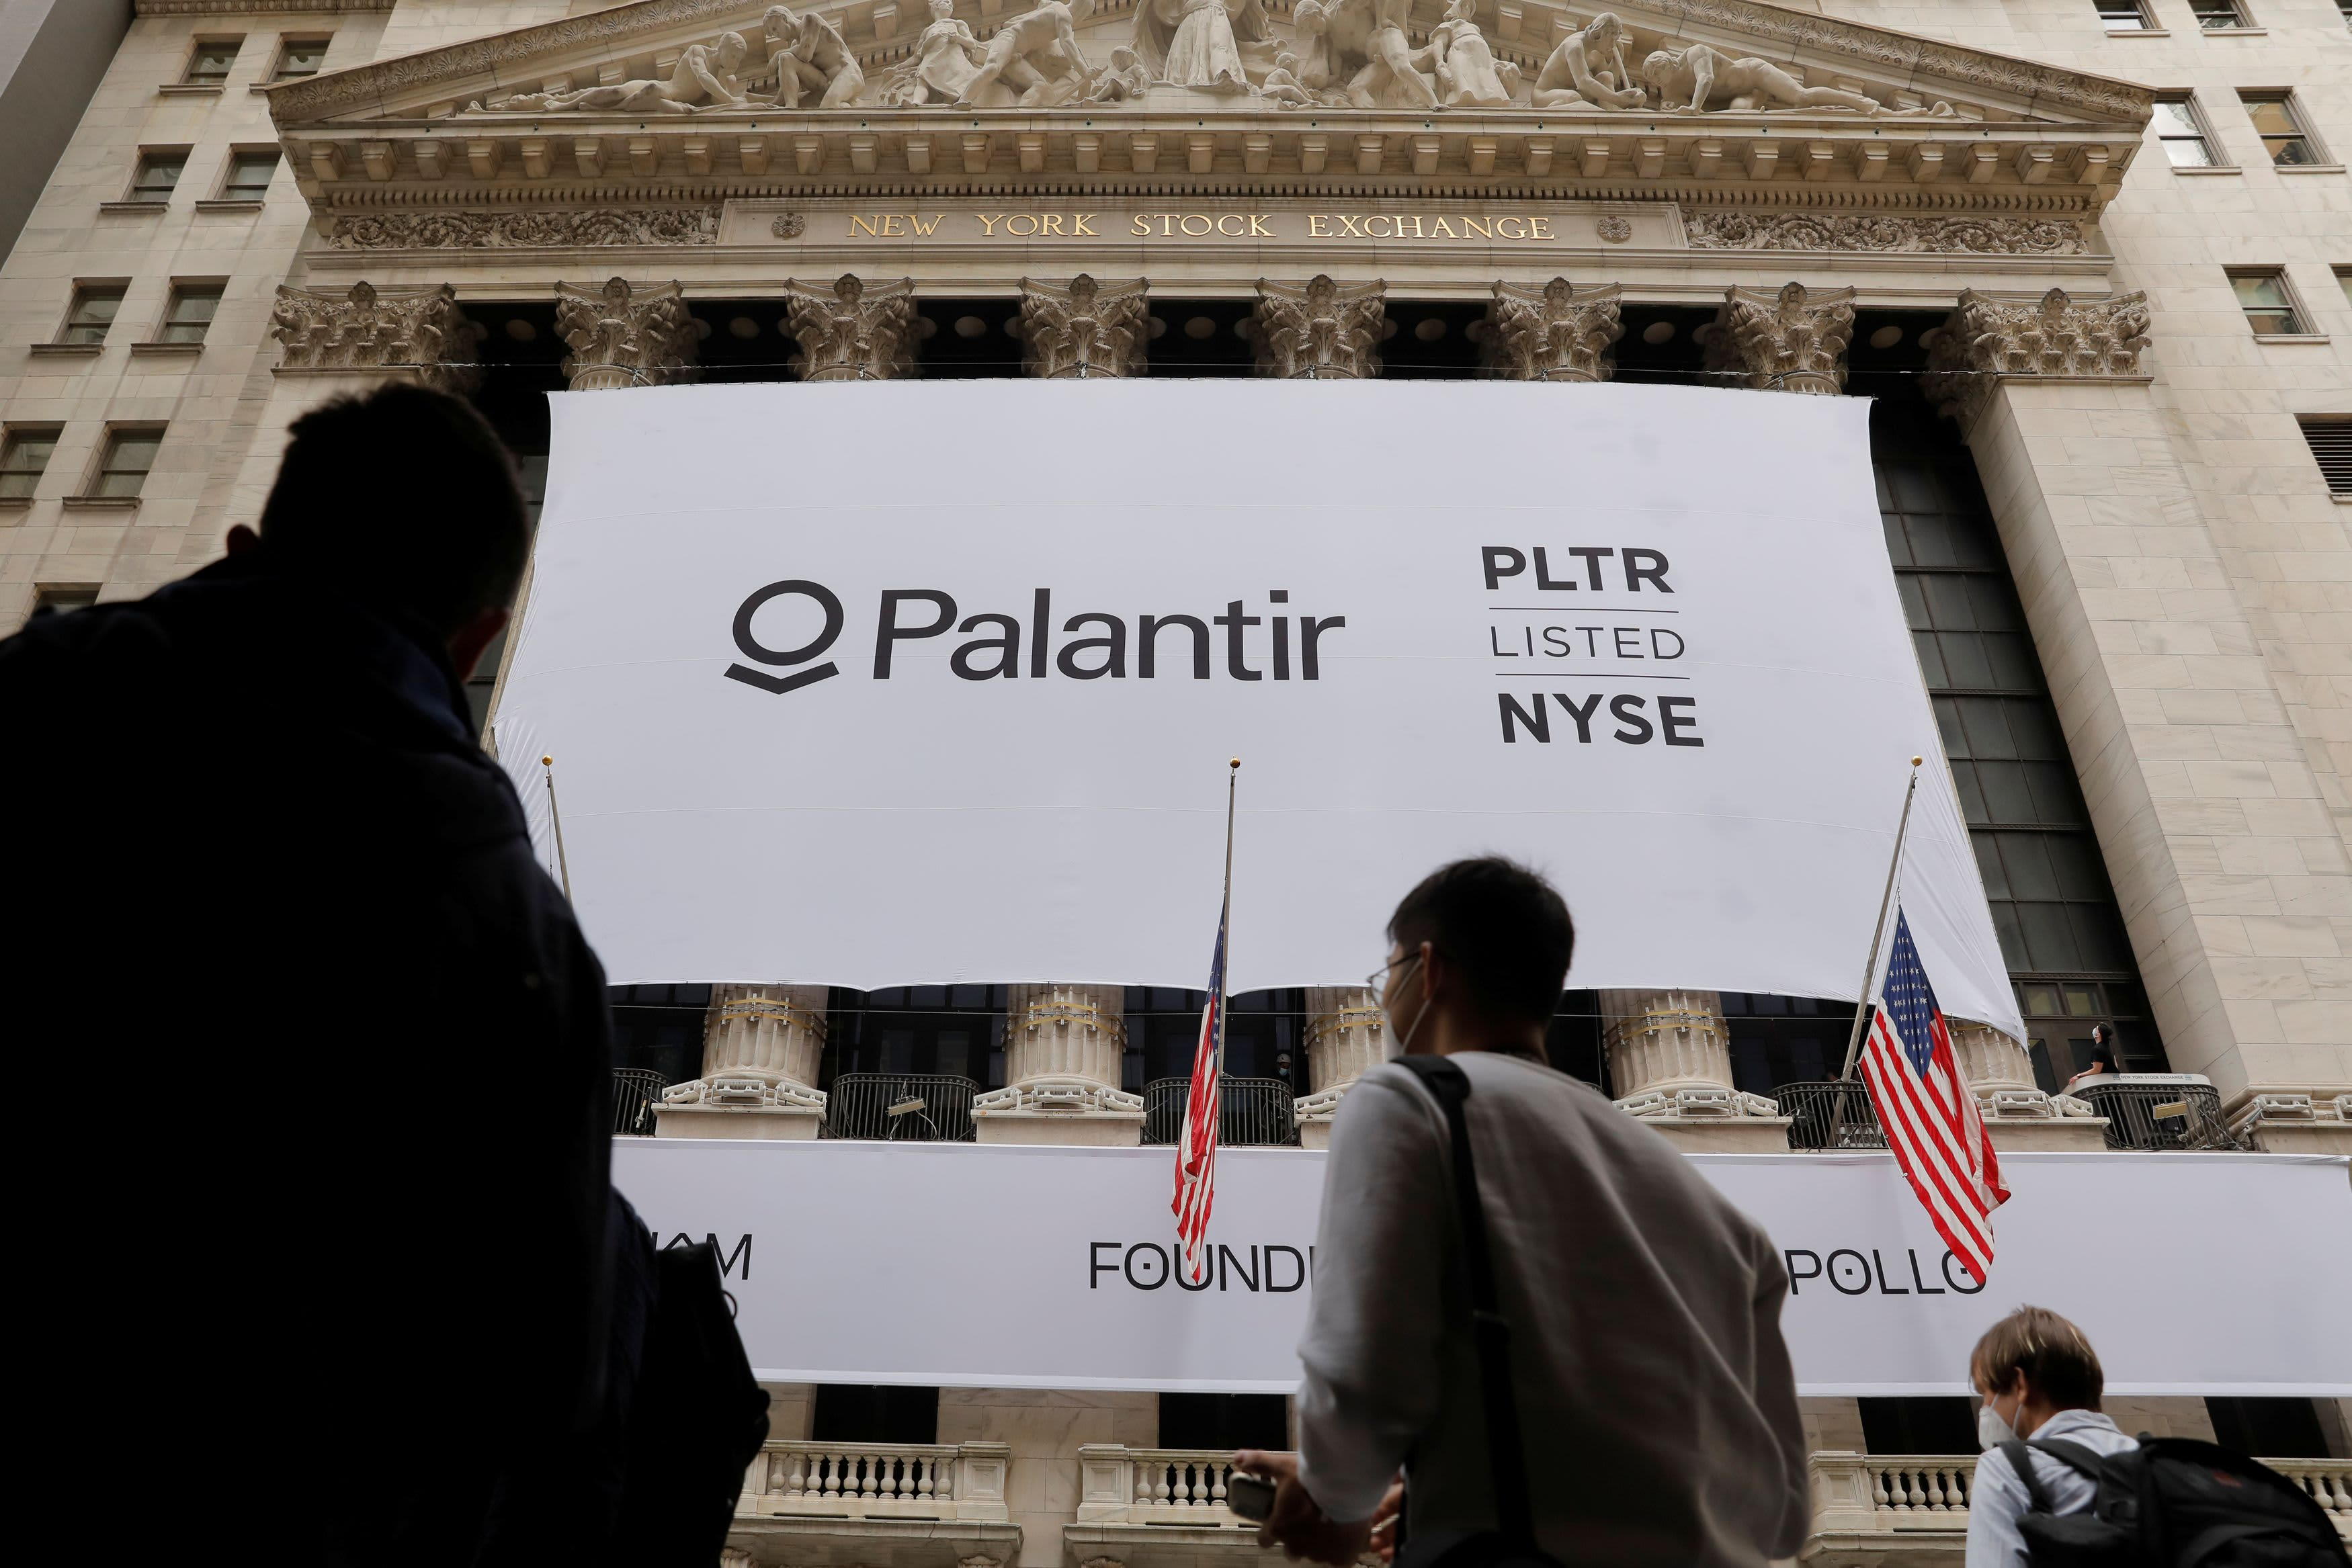 Palantir insiders struggled to sell shares at debut because they couldn't access trading platform – CNBC